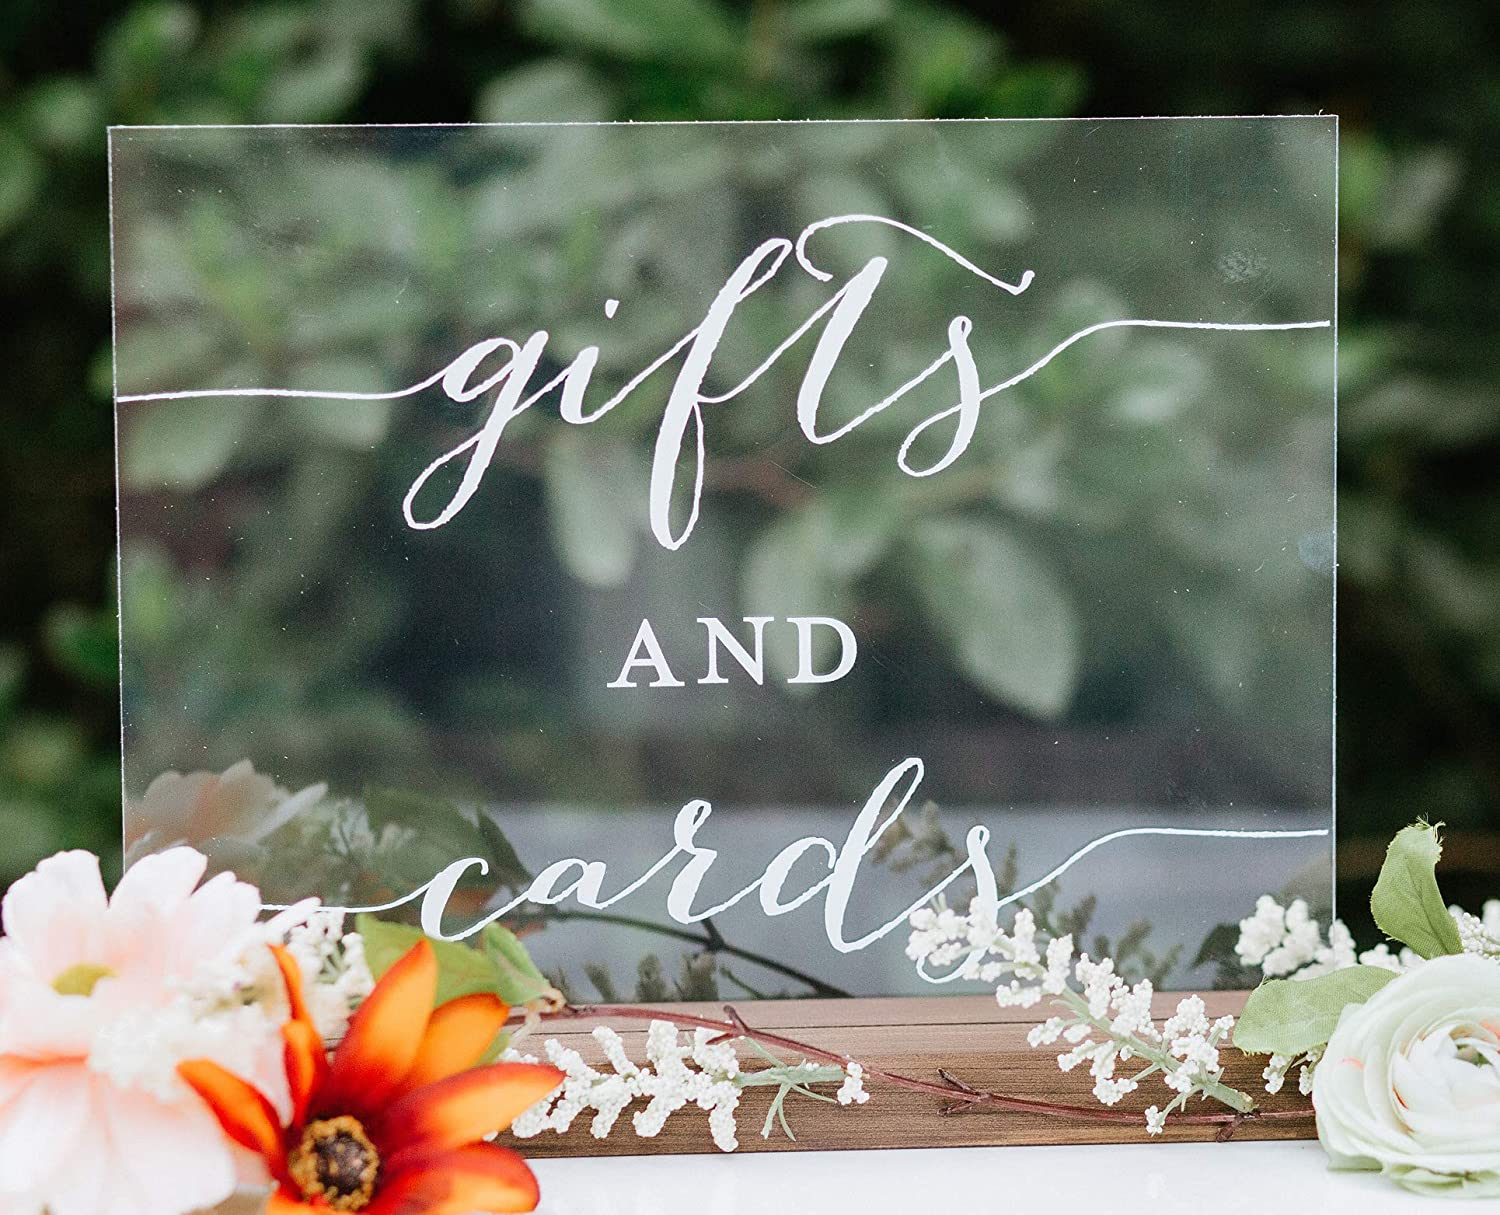 Gifts and Cards Acrylic Custom Modern Wedding Sign Personalized for Display